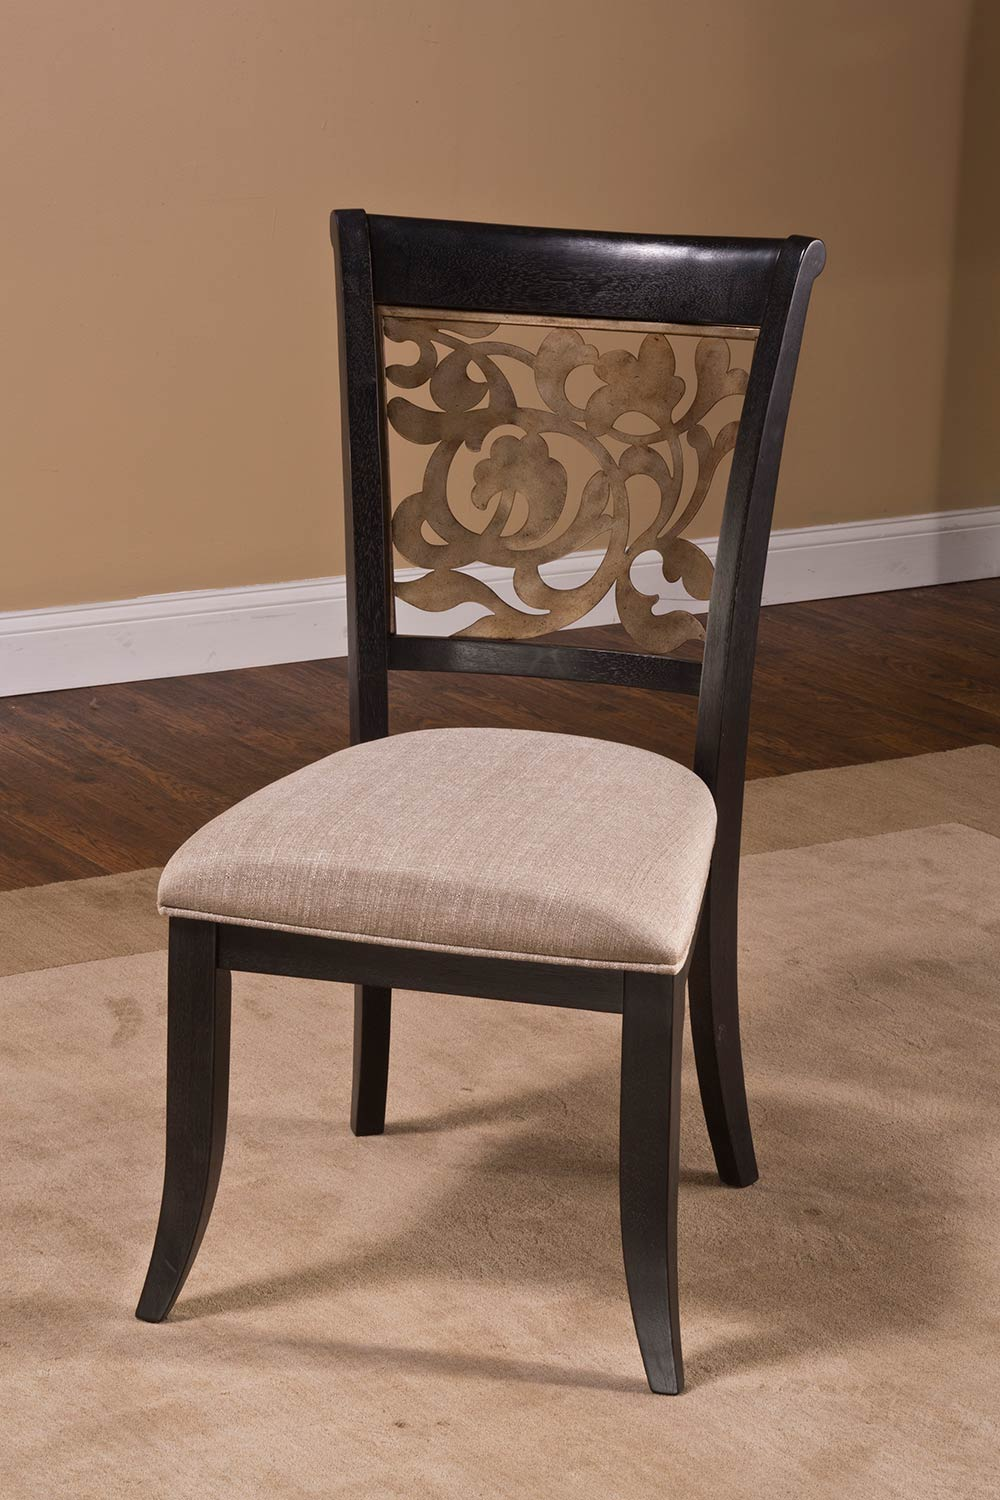 Hillsdale Bennington Dining Chair - Black Distressed Gray - Putty Fabric